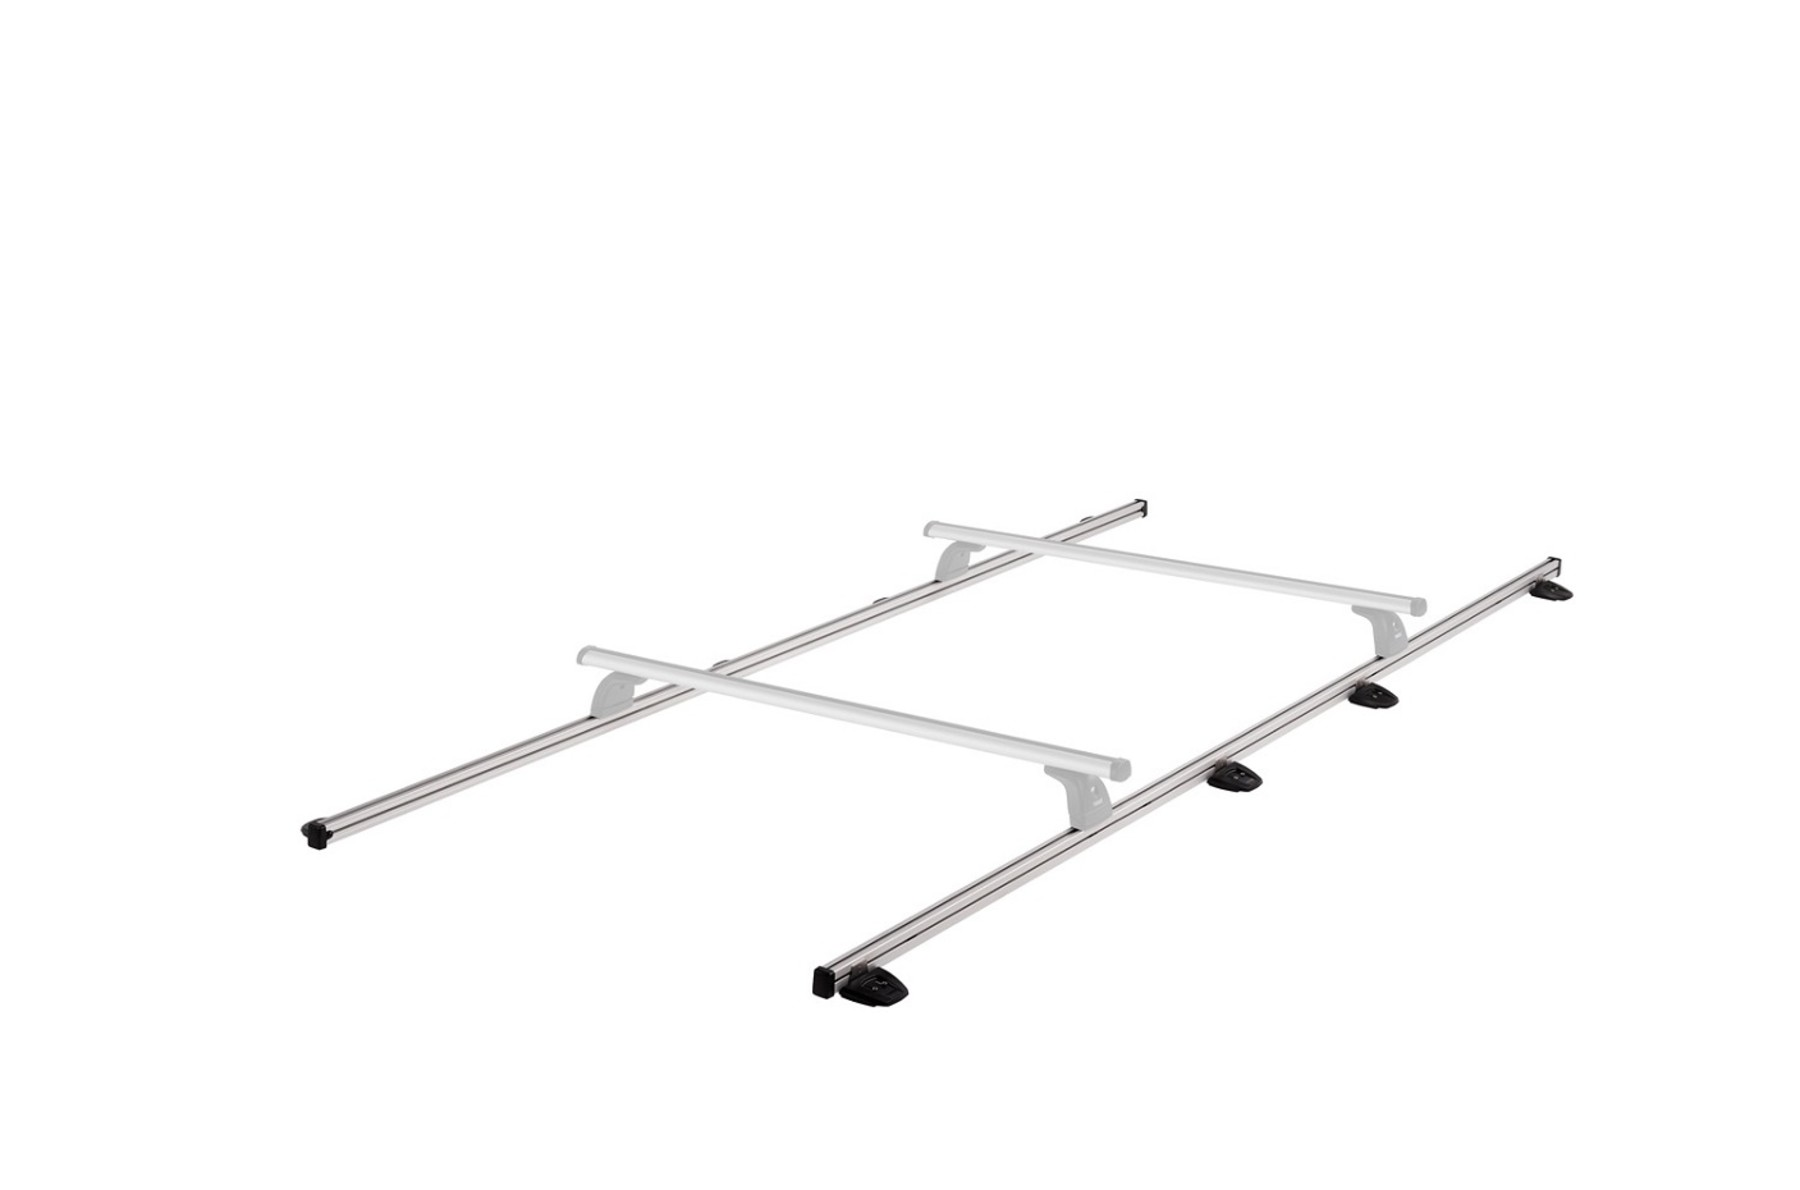 Thule SmartClamp System roof rack